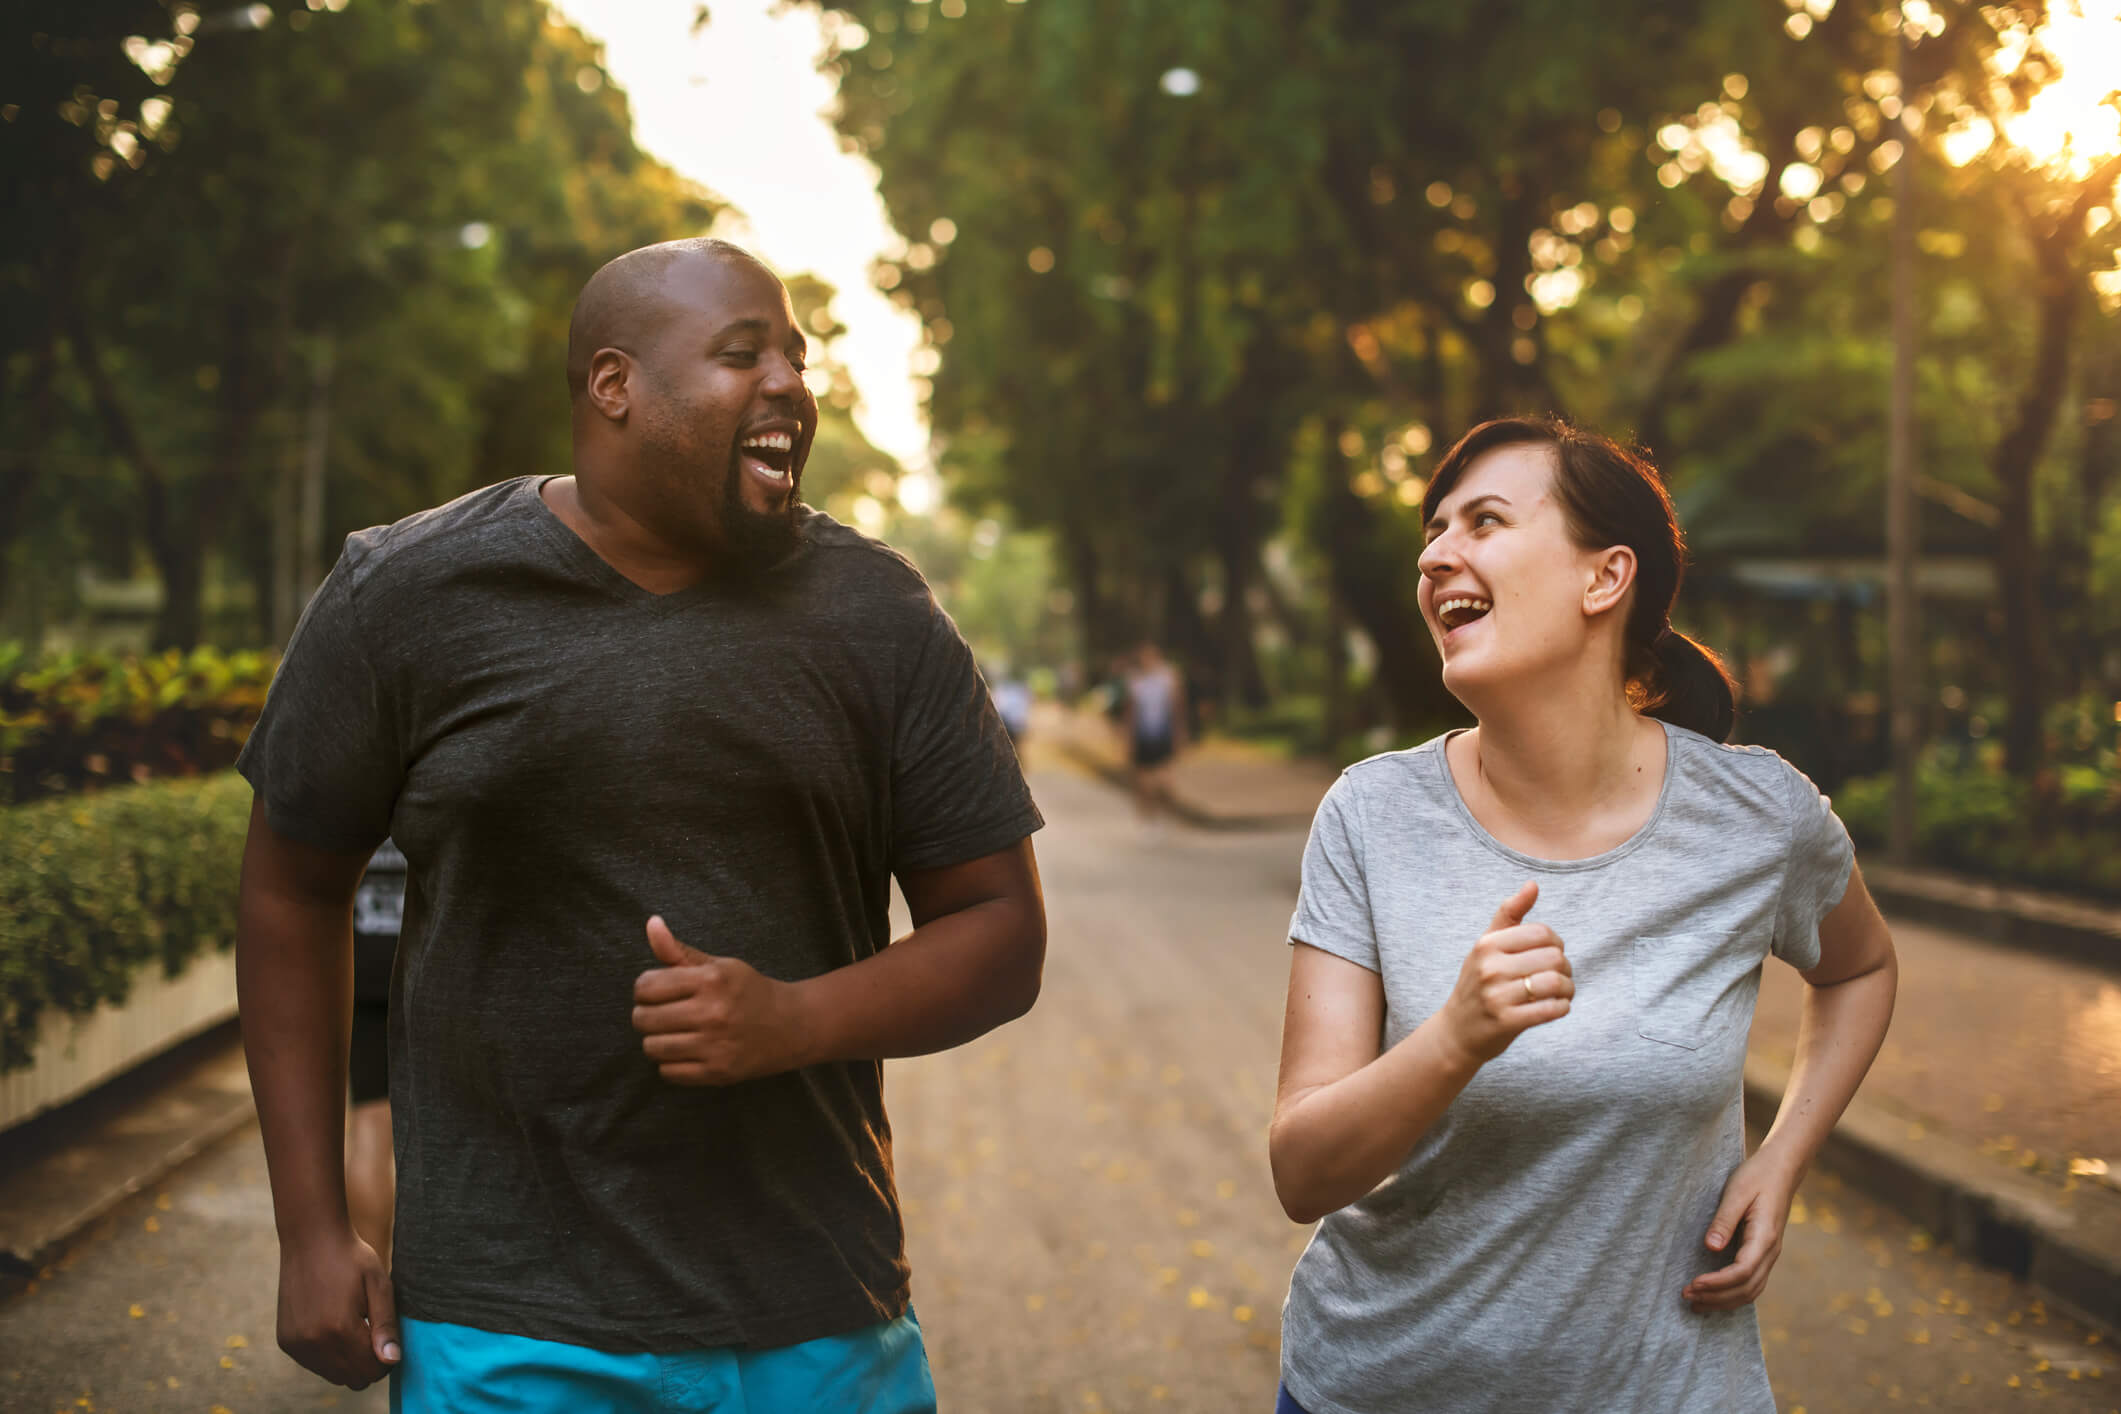 A man and woman running in a park